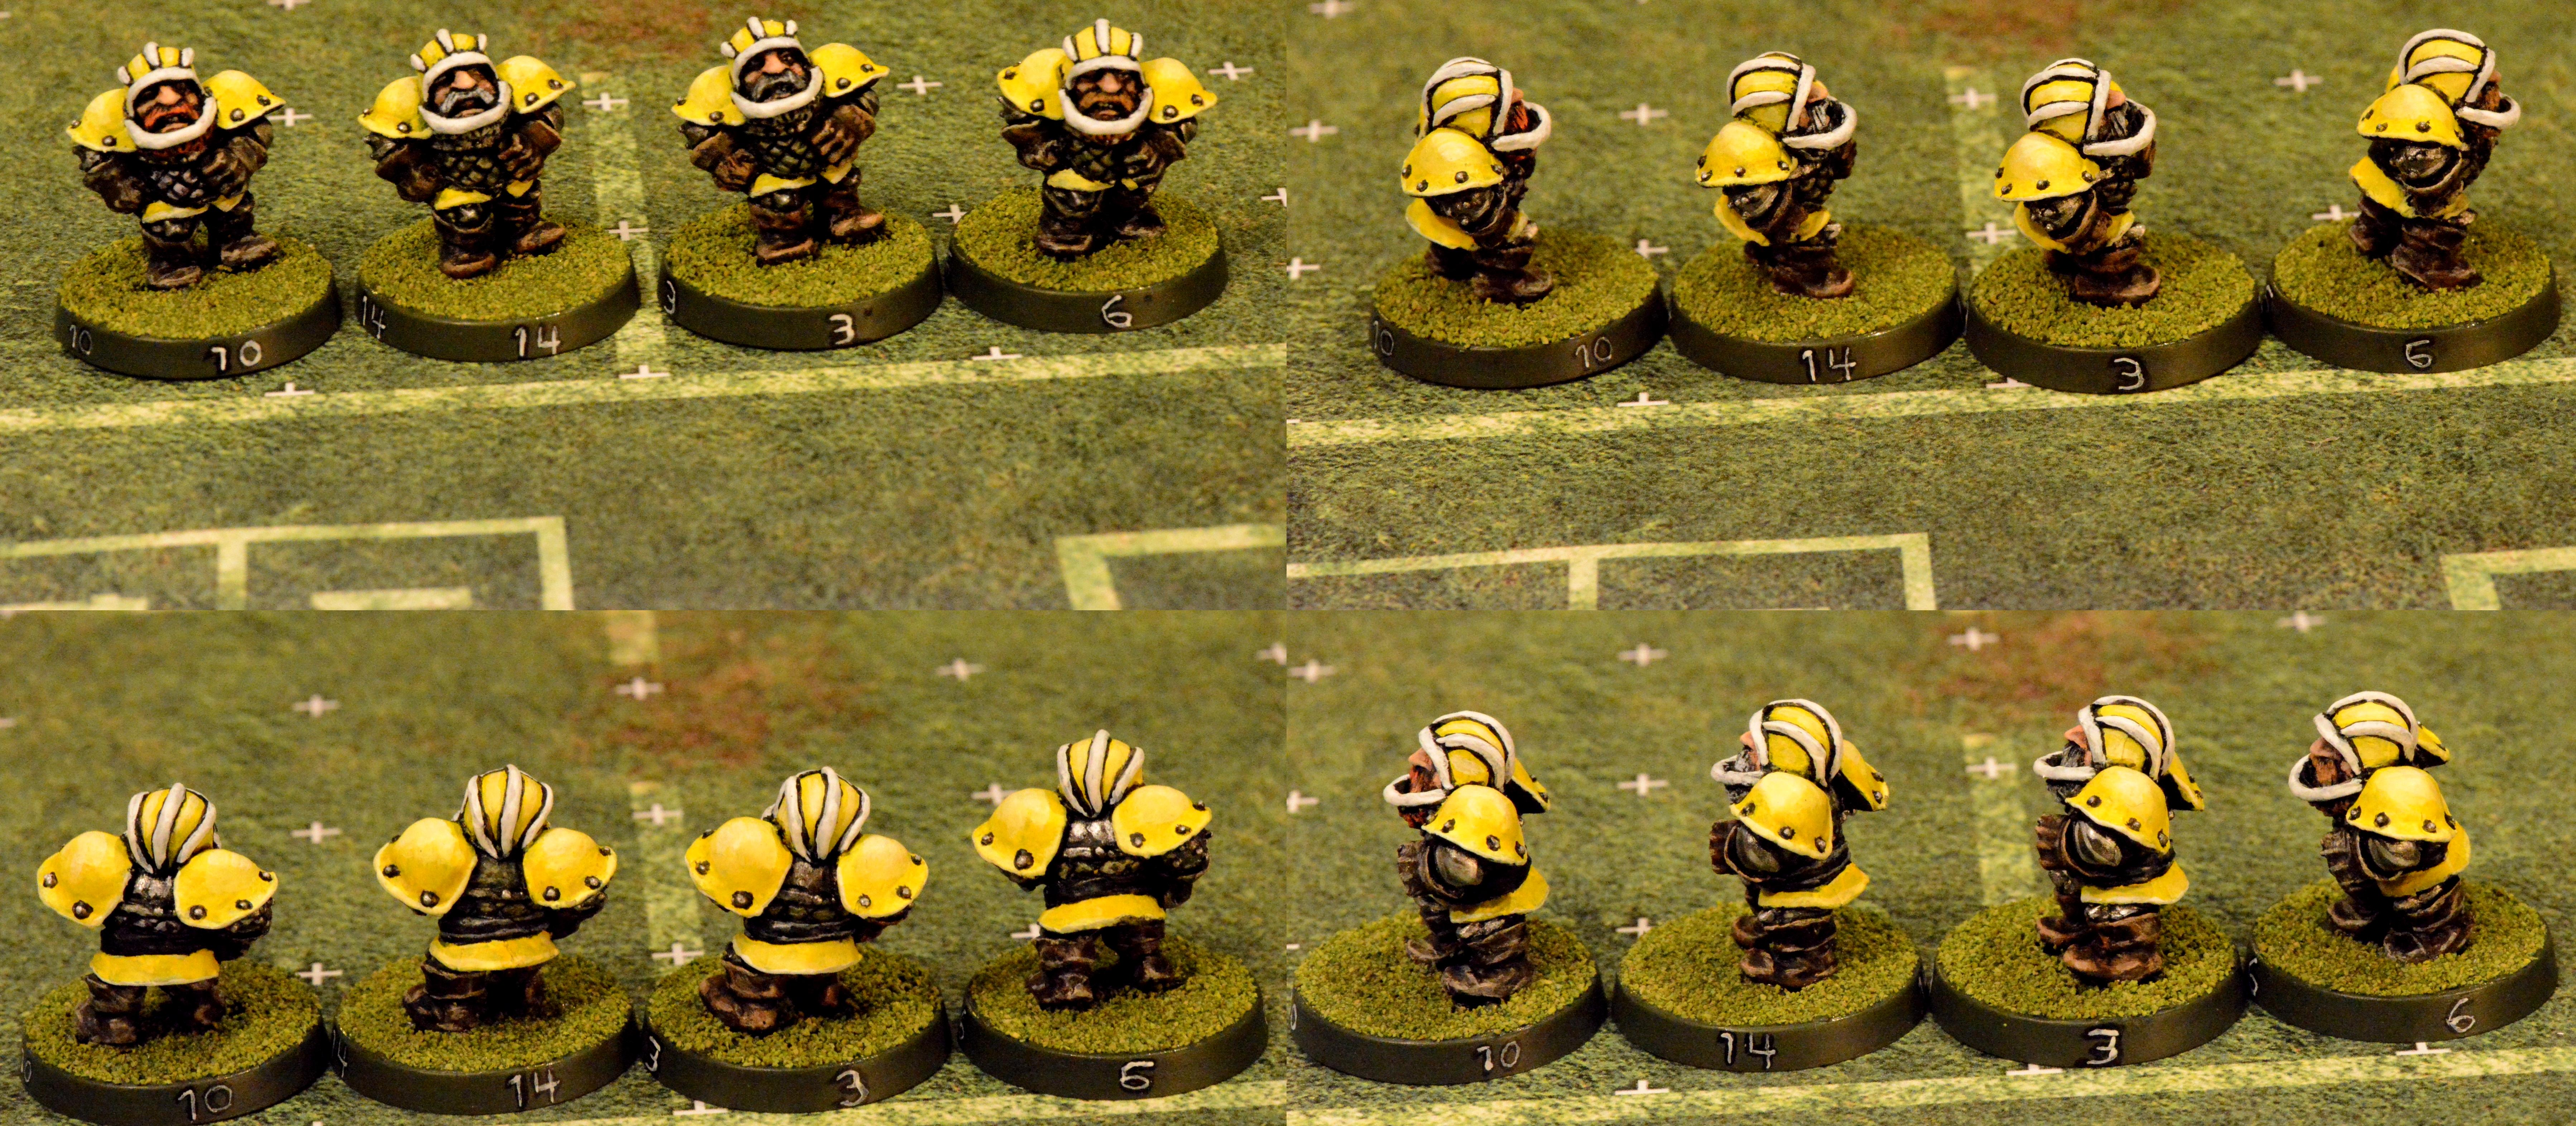 2nd, 2nd Edition, Blocker, Blockers, Blood, Blood Bowl, Bowl, Dwarves, Edition